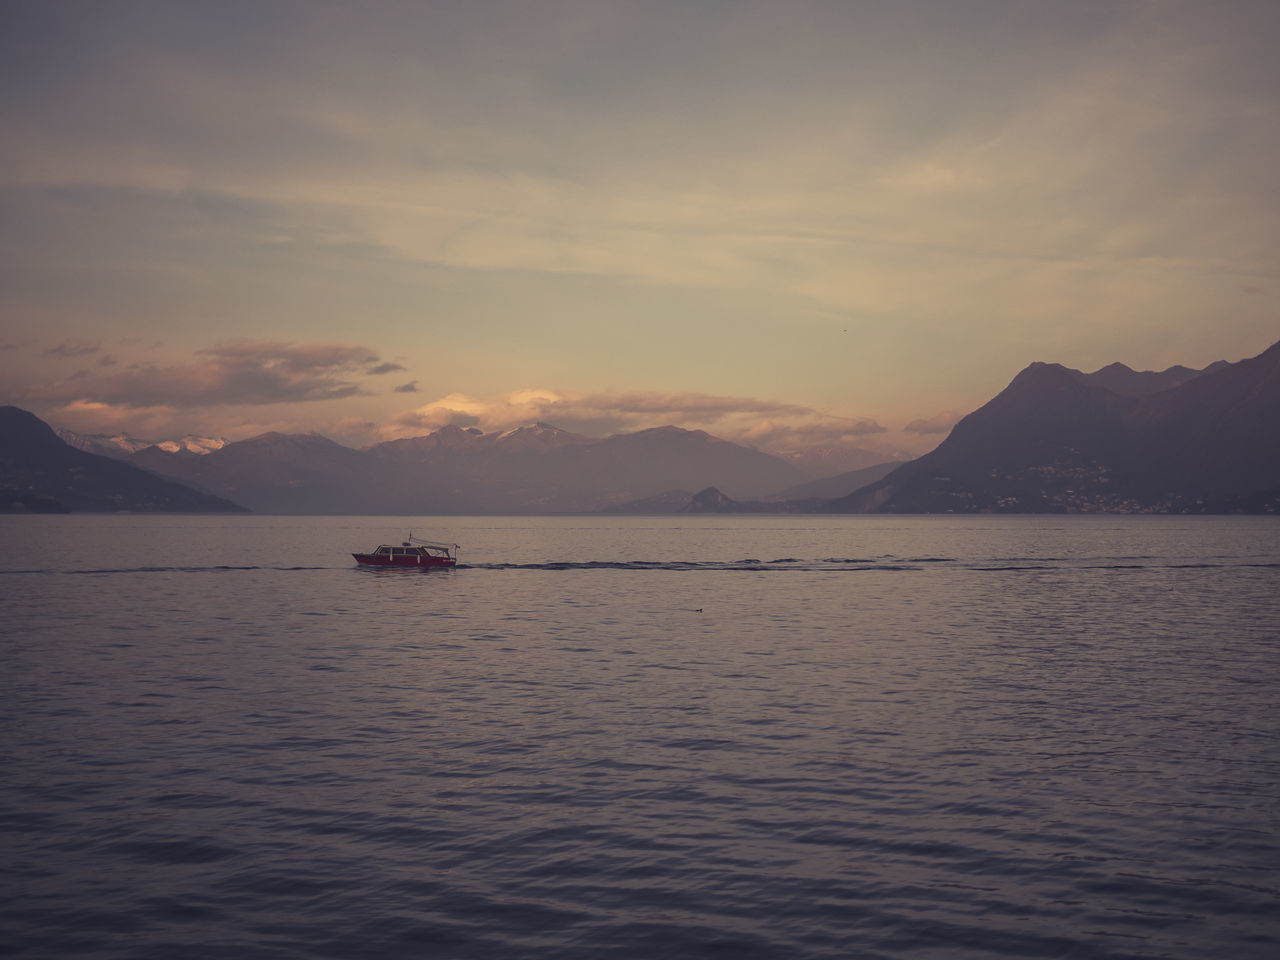 Astrology Sign Beauty In Nature Cloud - Sky Cultures Day Landscape Mountain Mountain Range Nature Nautical Vessel No People Outdoors Scenics Sky Stresa Sunset Tranquil Scene Travel Destinations Water